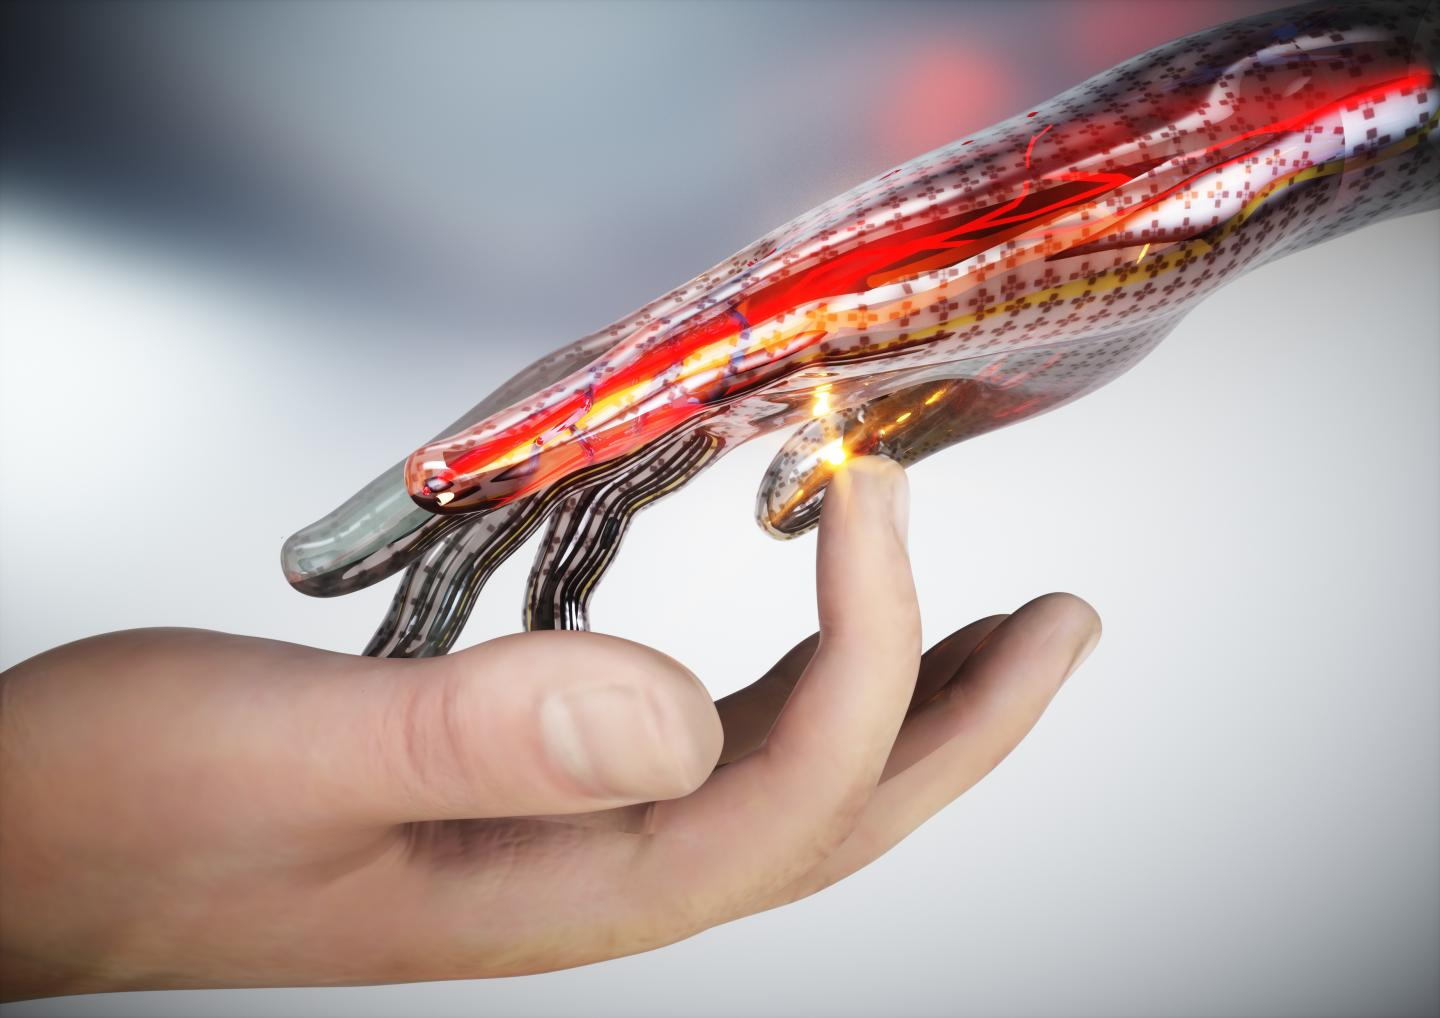 A concept image of electronic skin that can sense touch, pain, and heat. CREDIT Ella Maru Studio